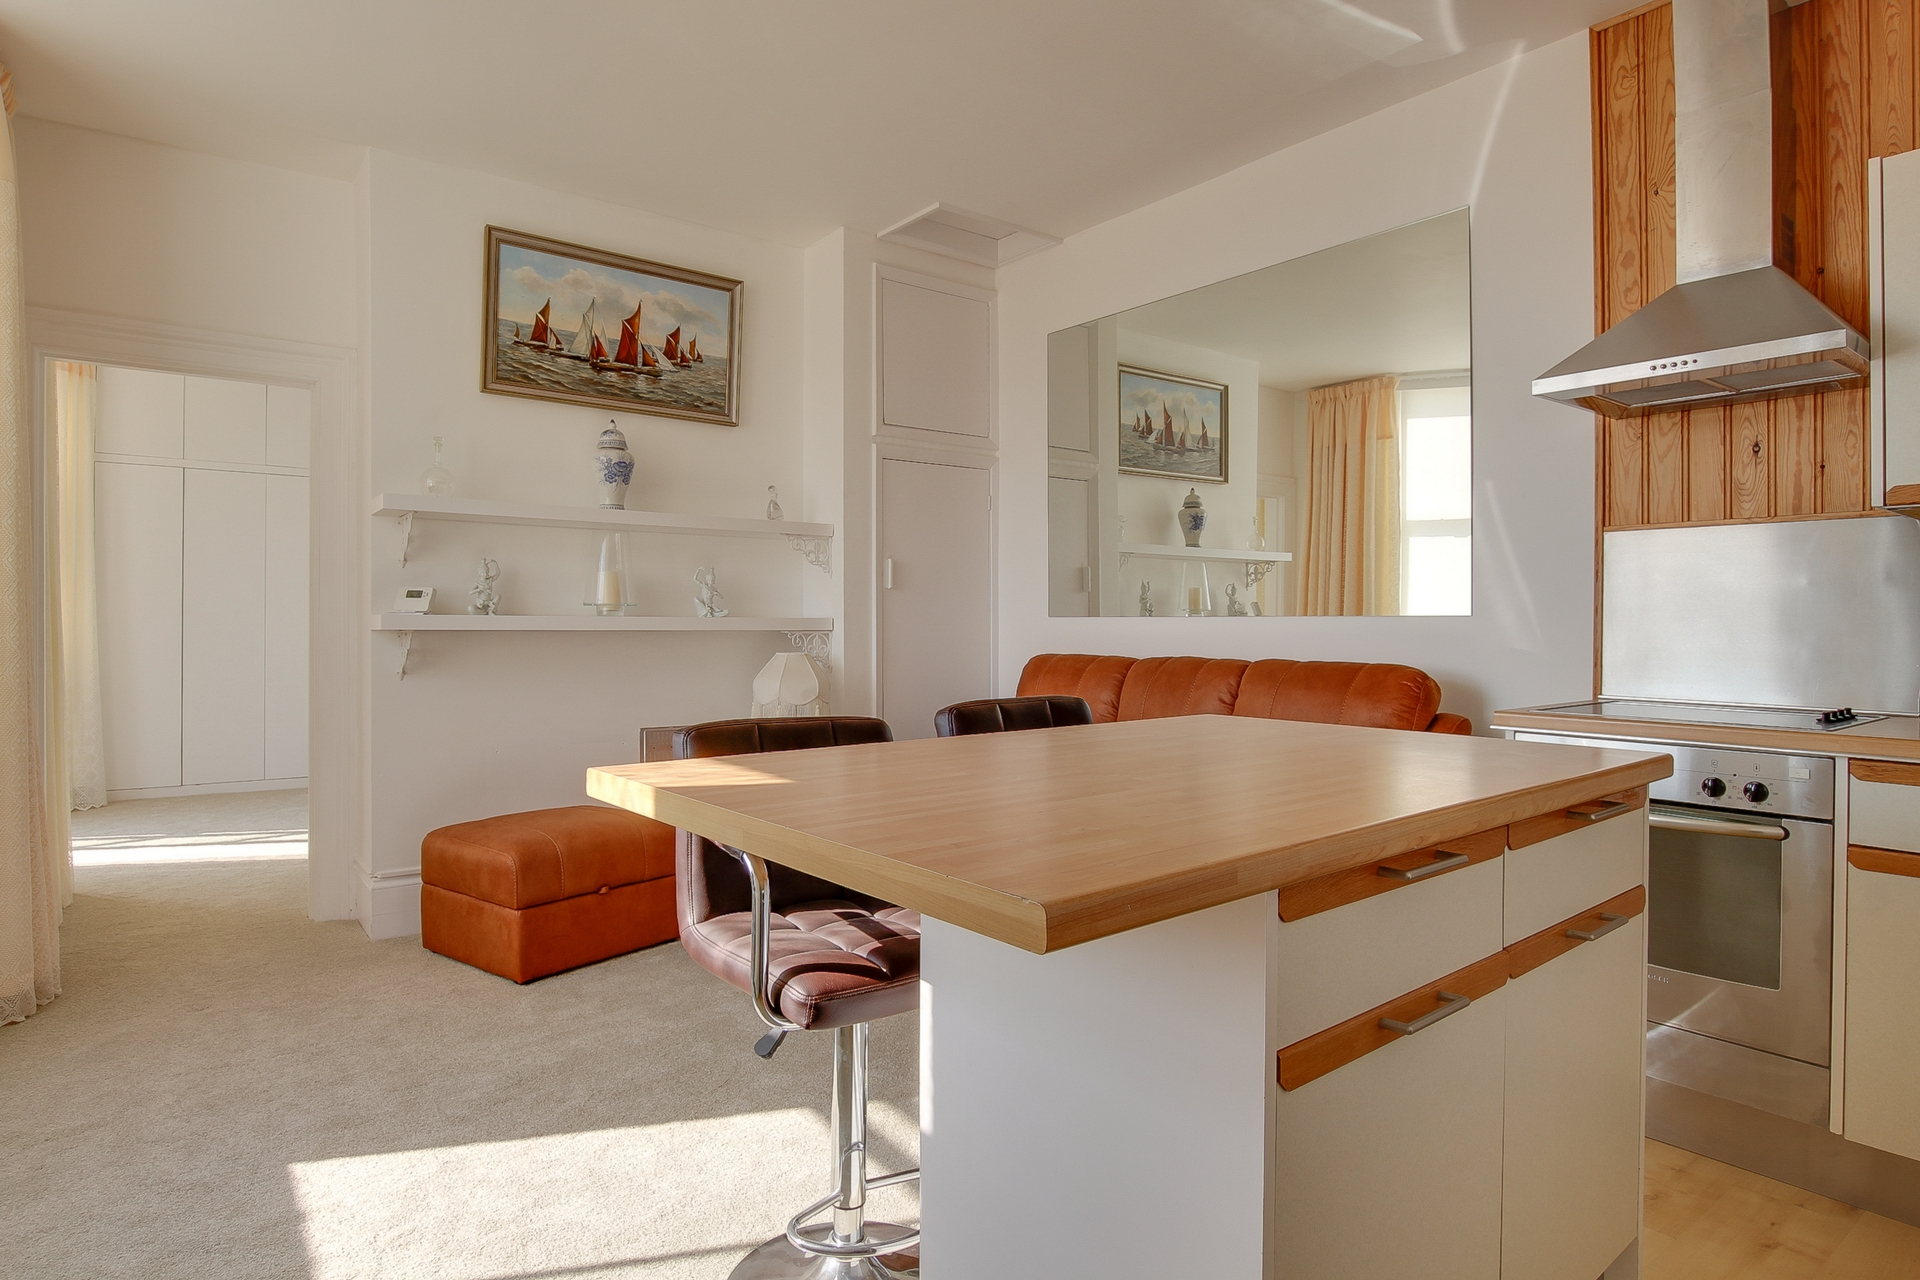 1 bed flat to rent in The Parade, Broadstairs, CT10 6